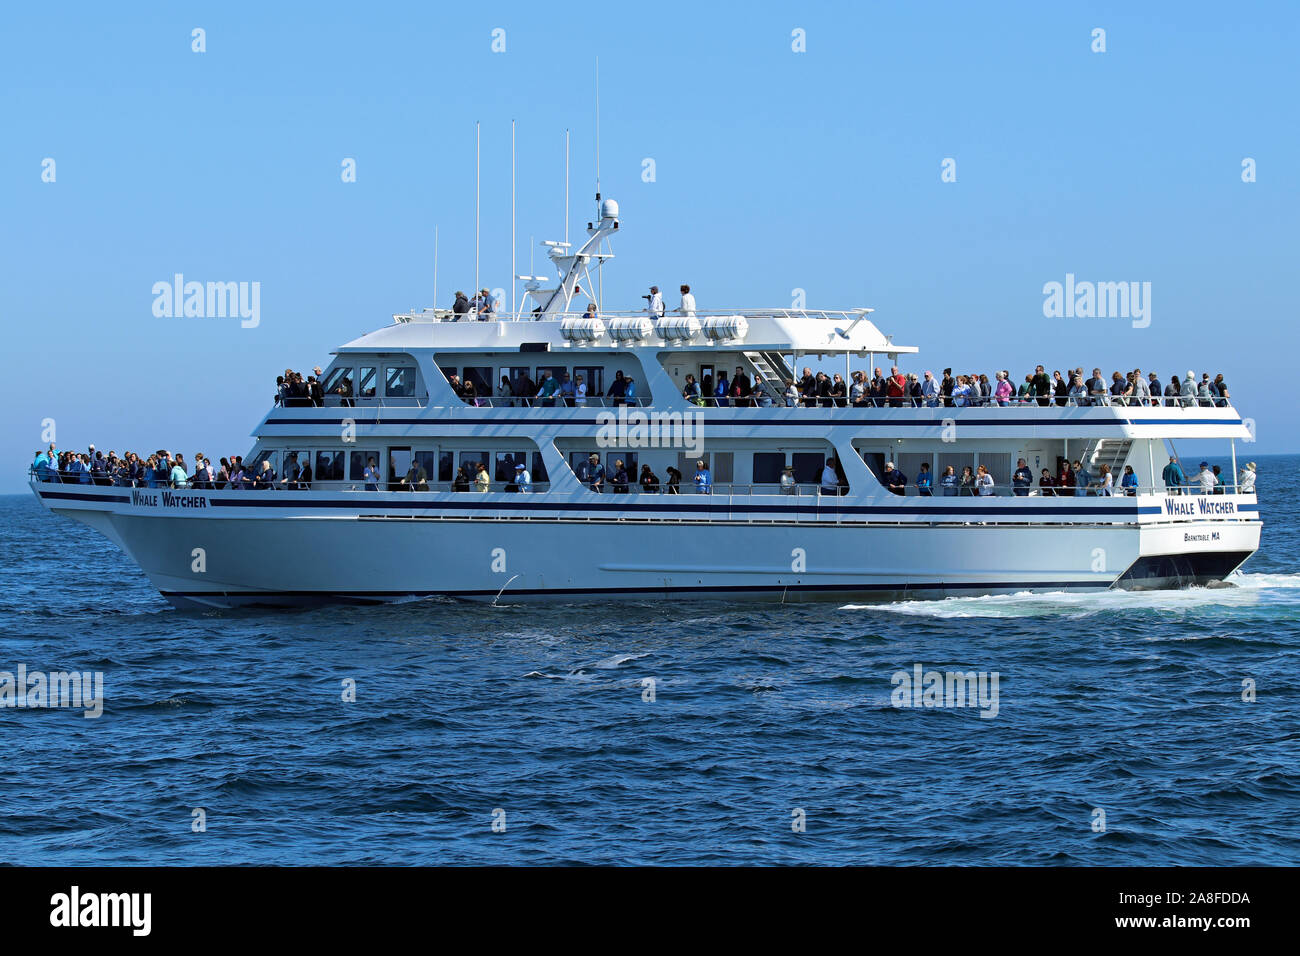 The Whale Watcher, a whale watching cruise out of Barnstable, Massachusetts Stock Photo